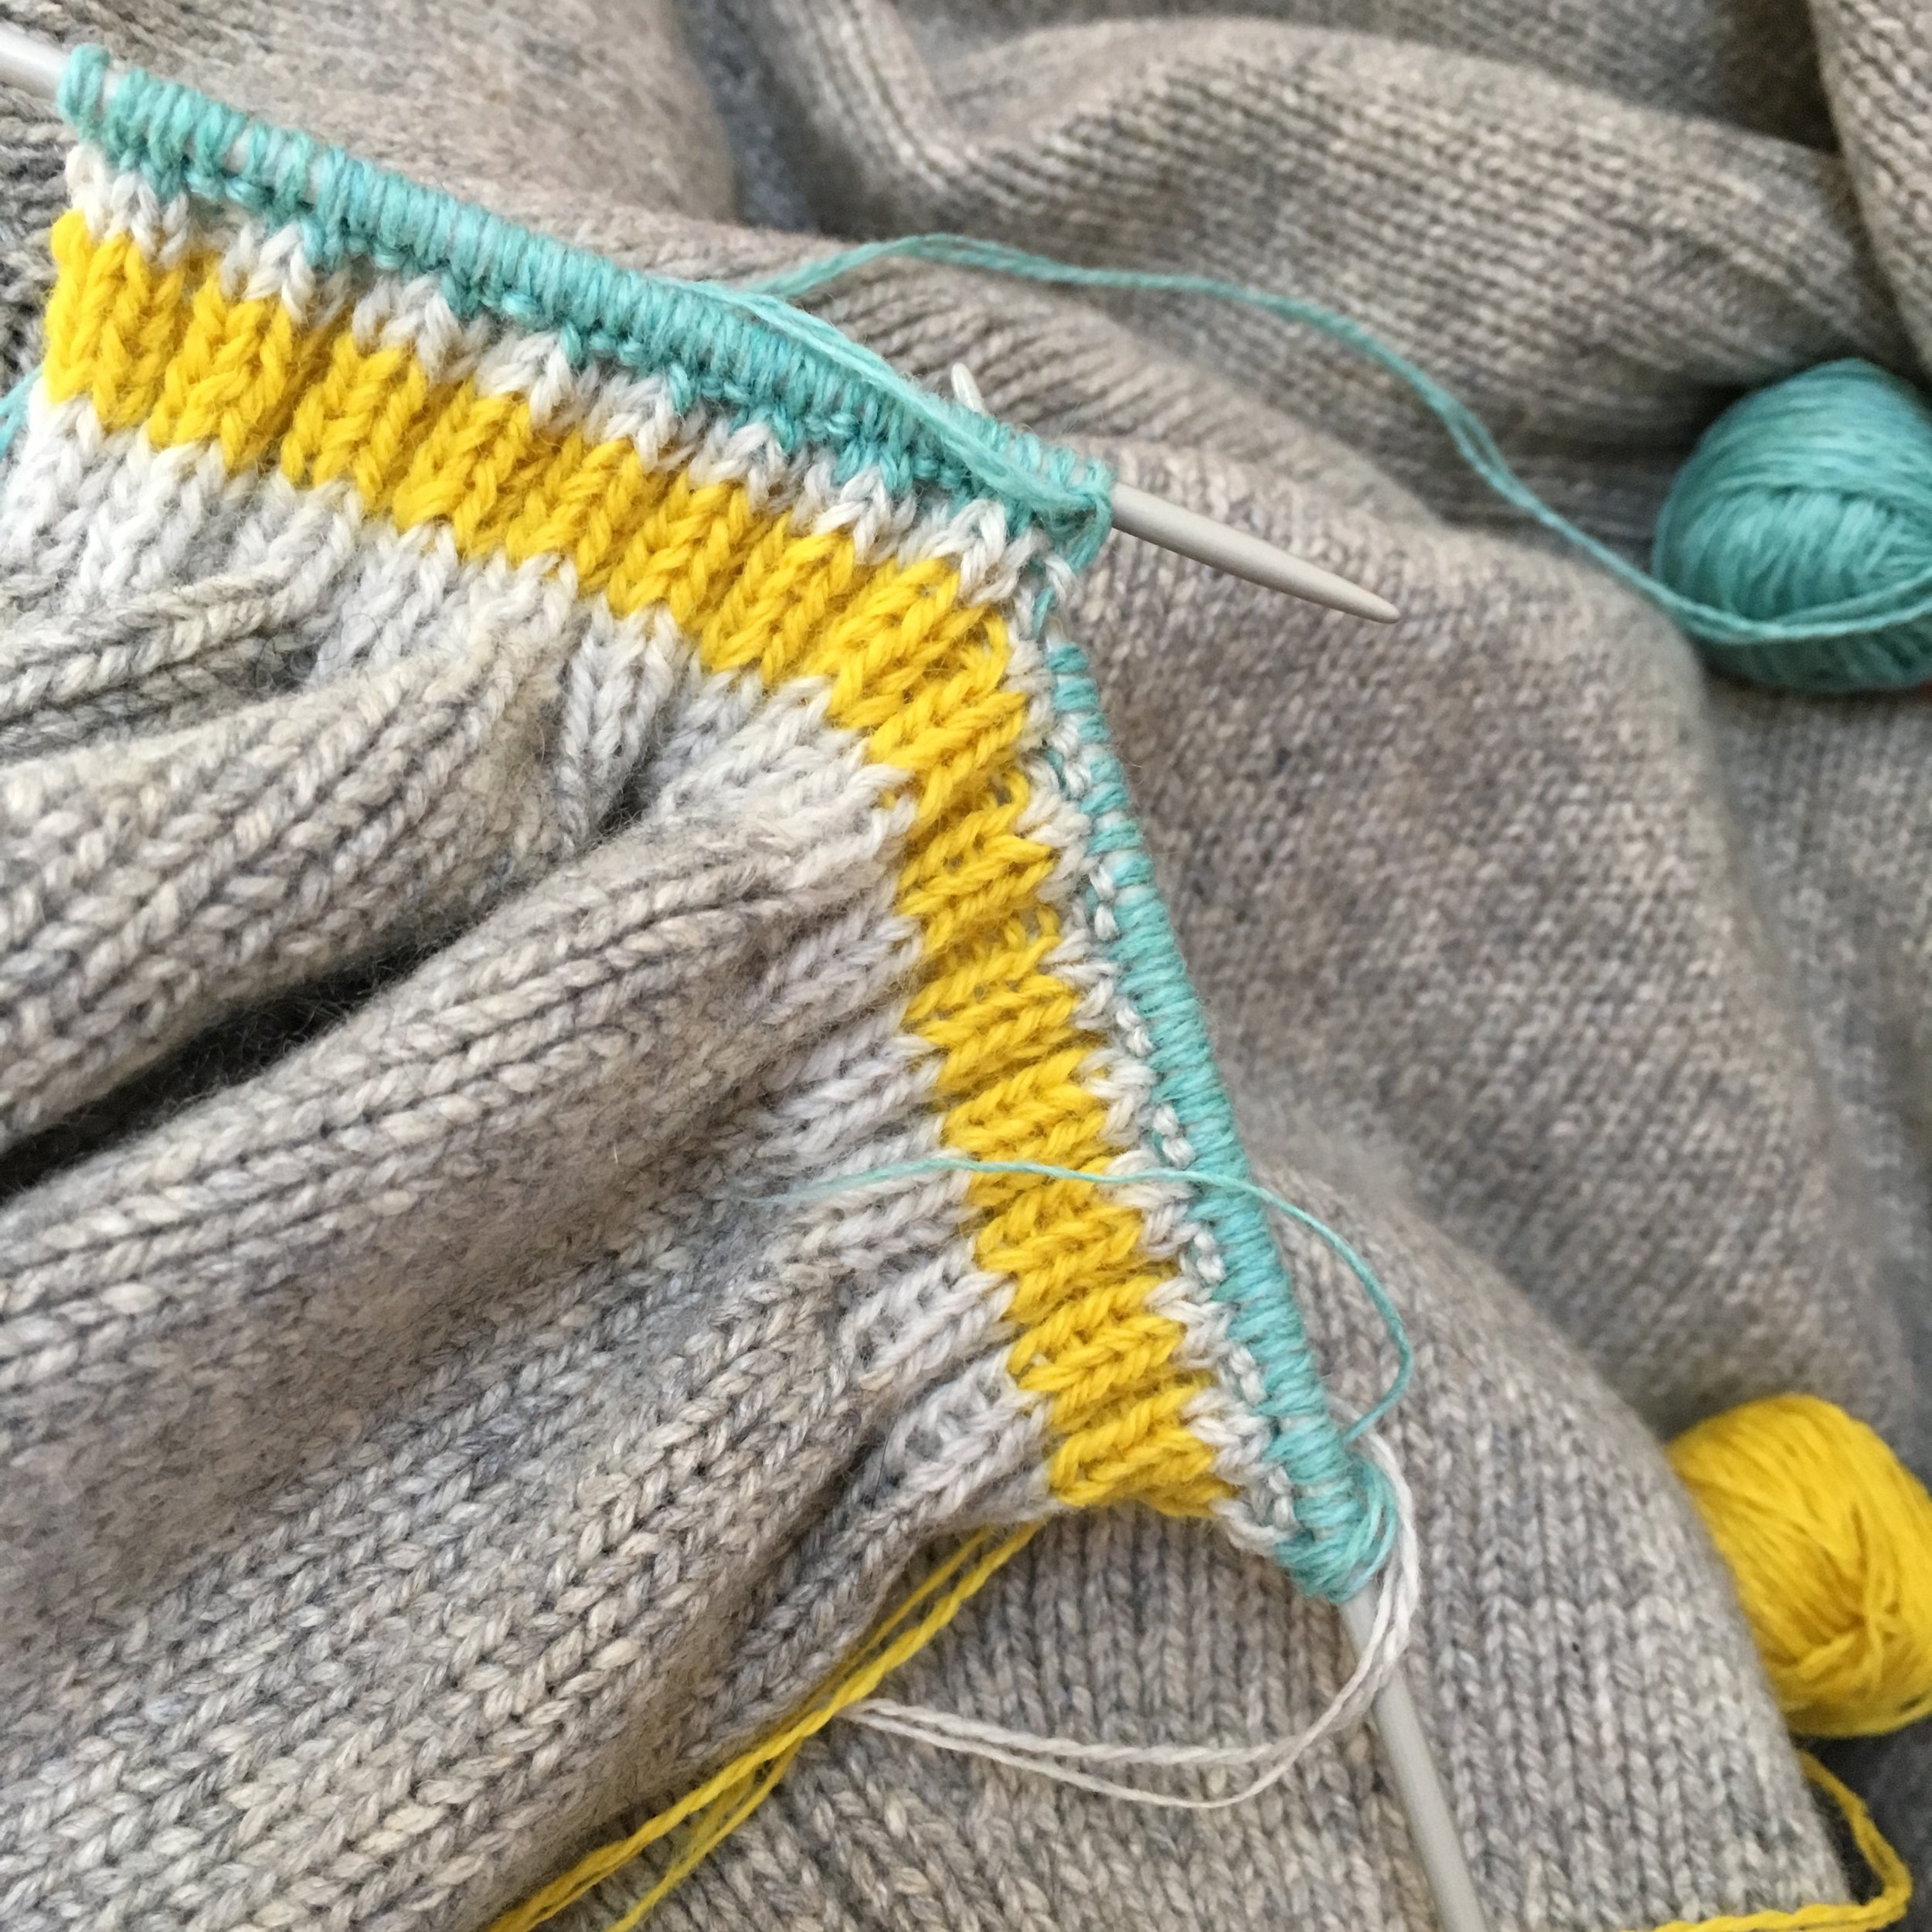 Re-knitting cuffs by hand, with bright stripes.